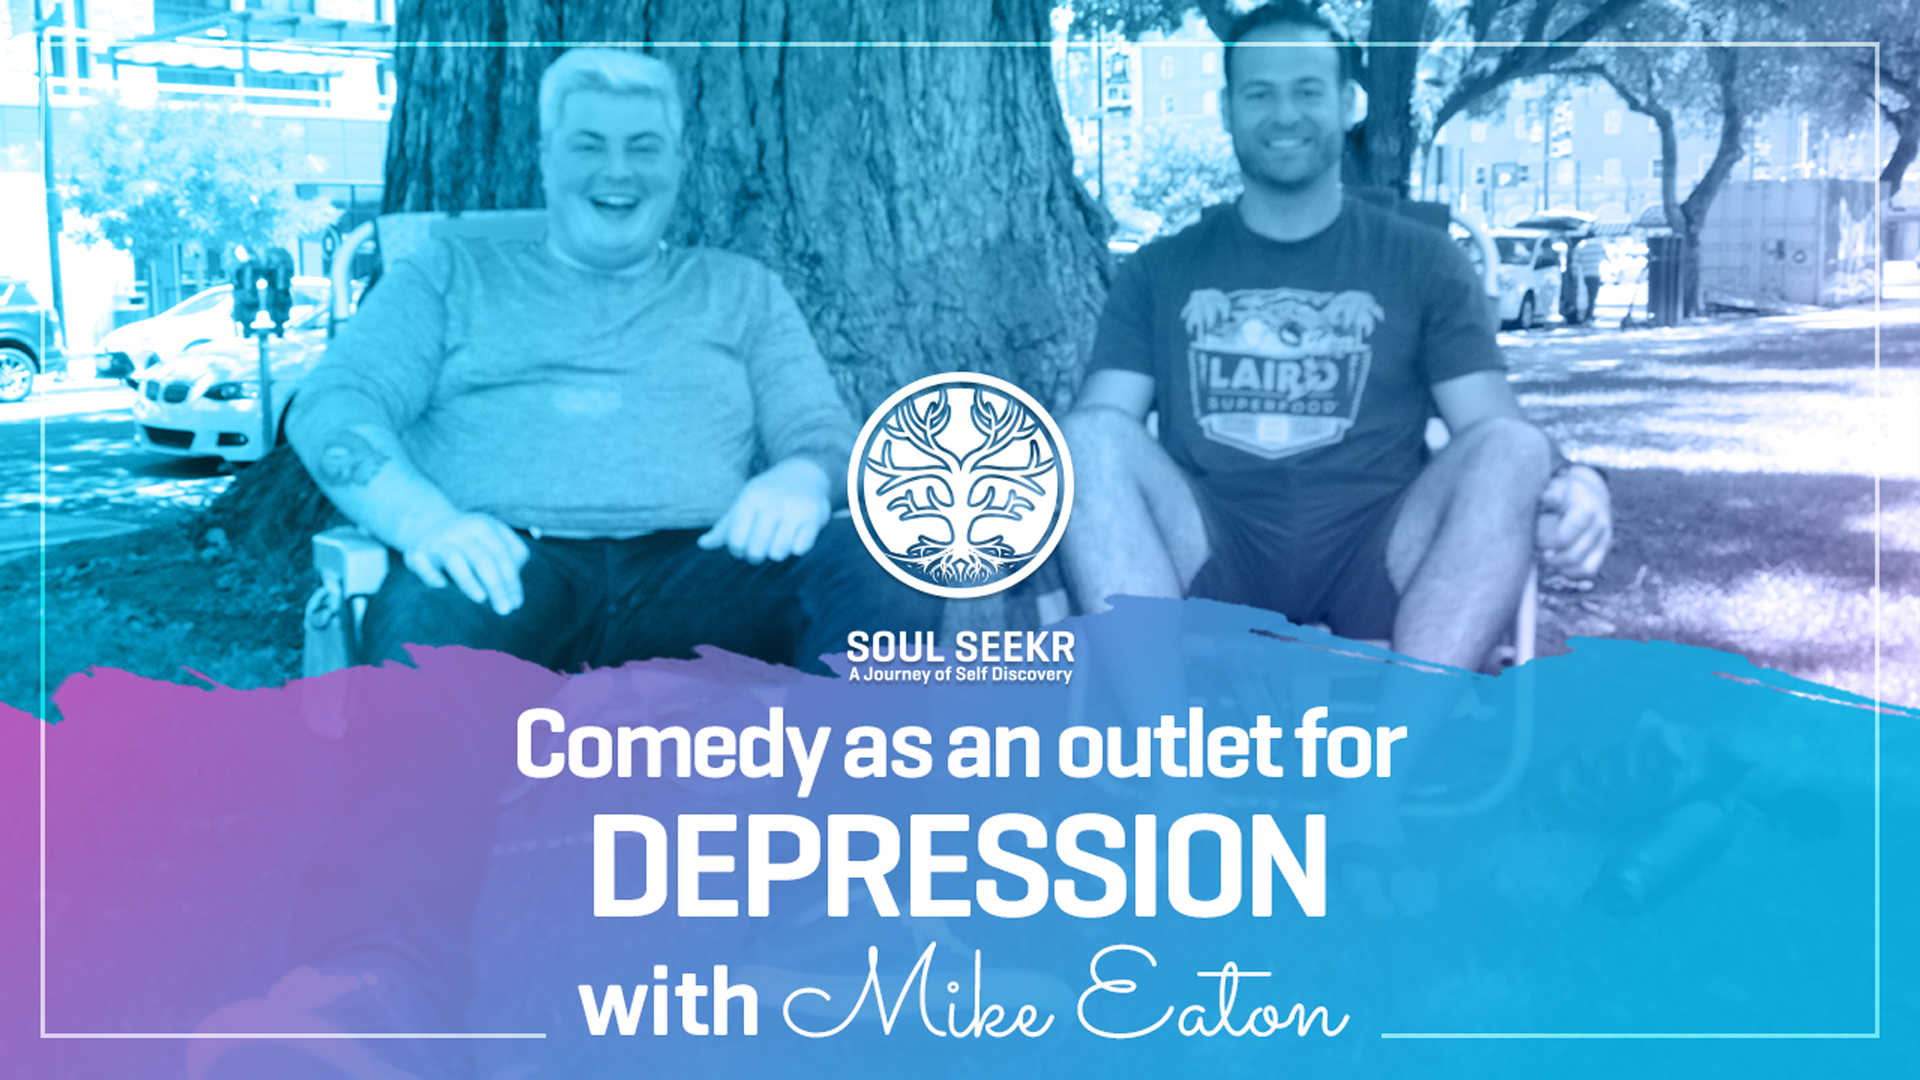 Pod #5: Trading Tears for Laughs w/ Comedian Mike Eaton